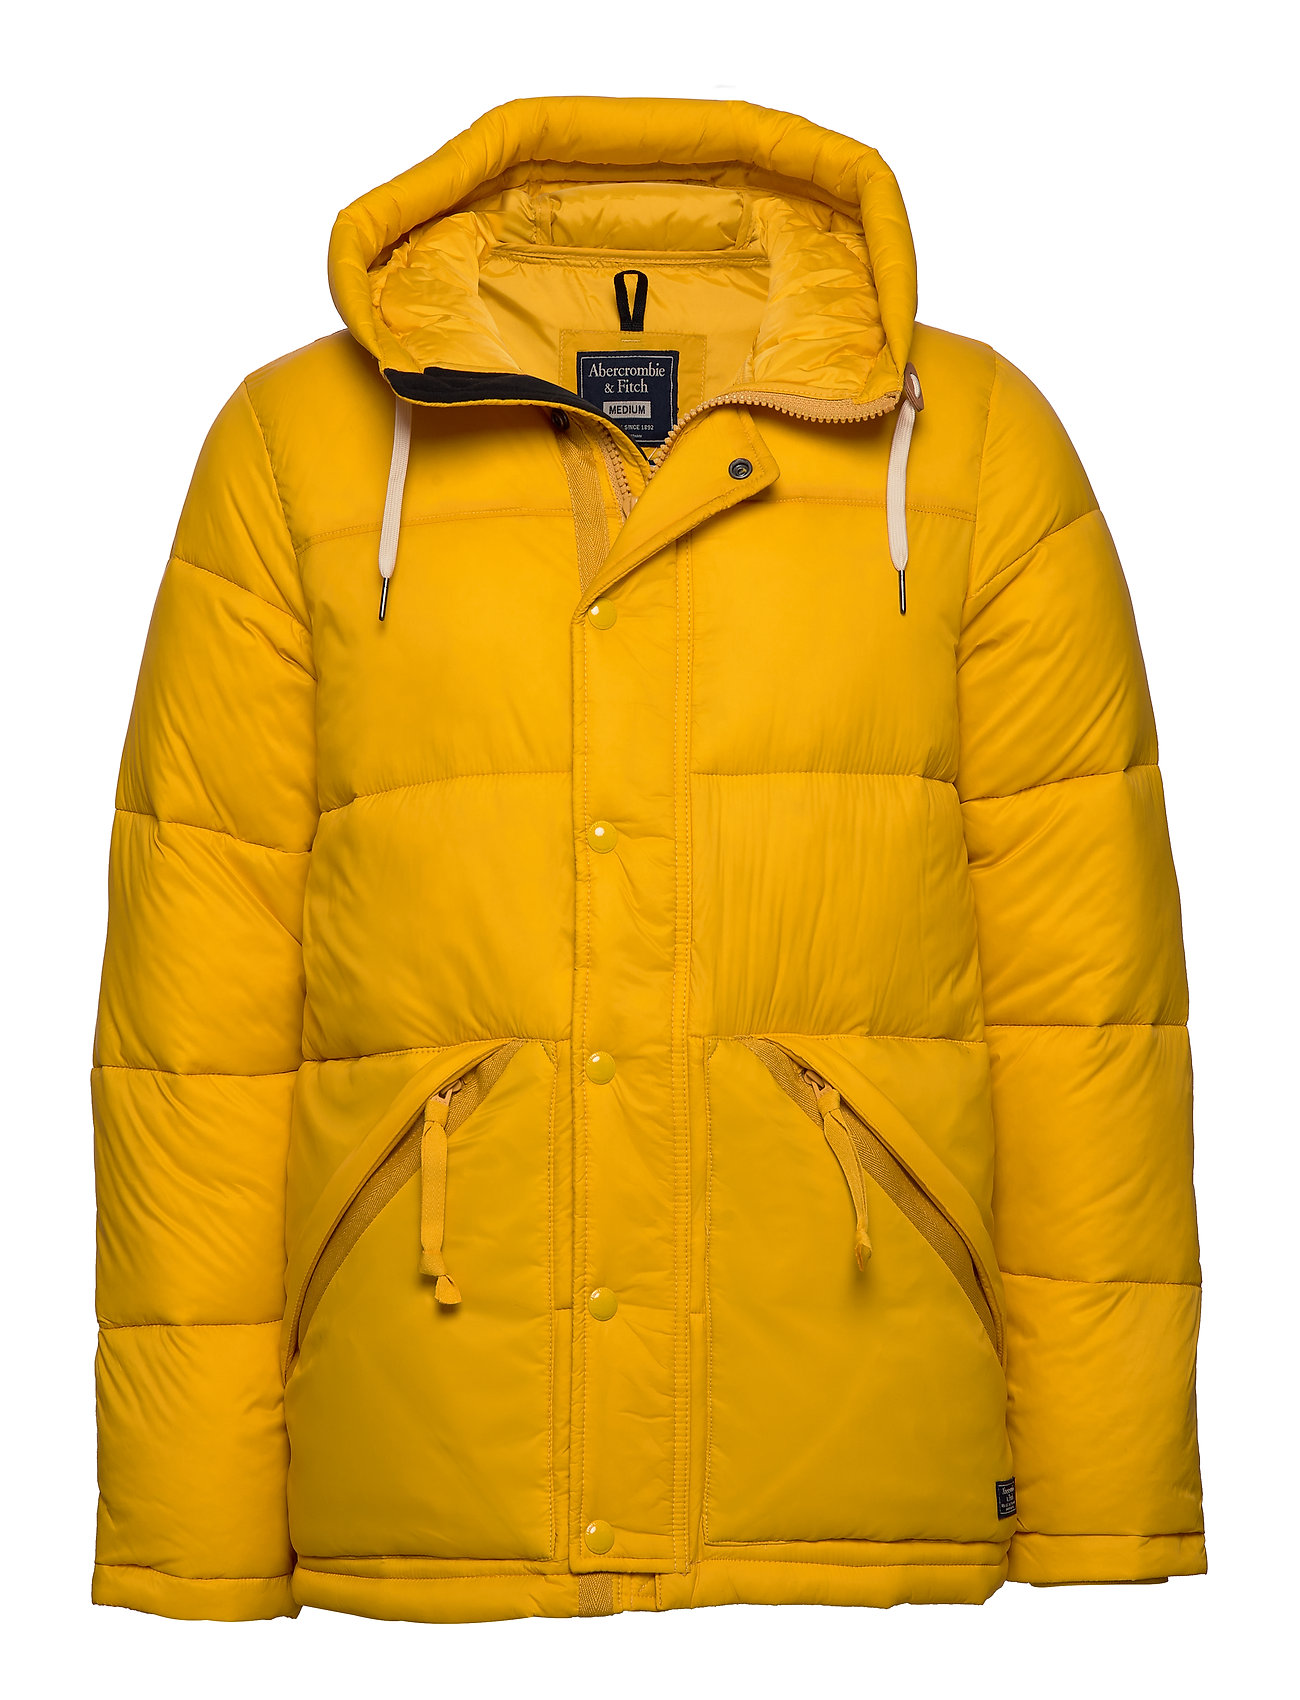 Abercrombie & Fitch Ultra Puffer - YELLOW DD